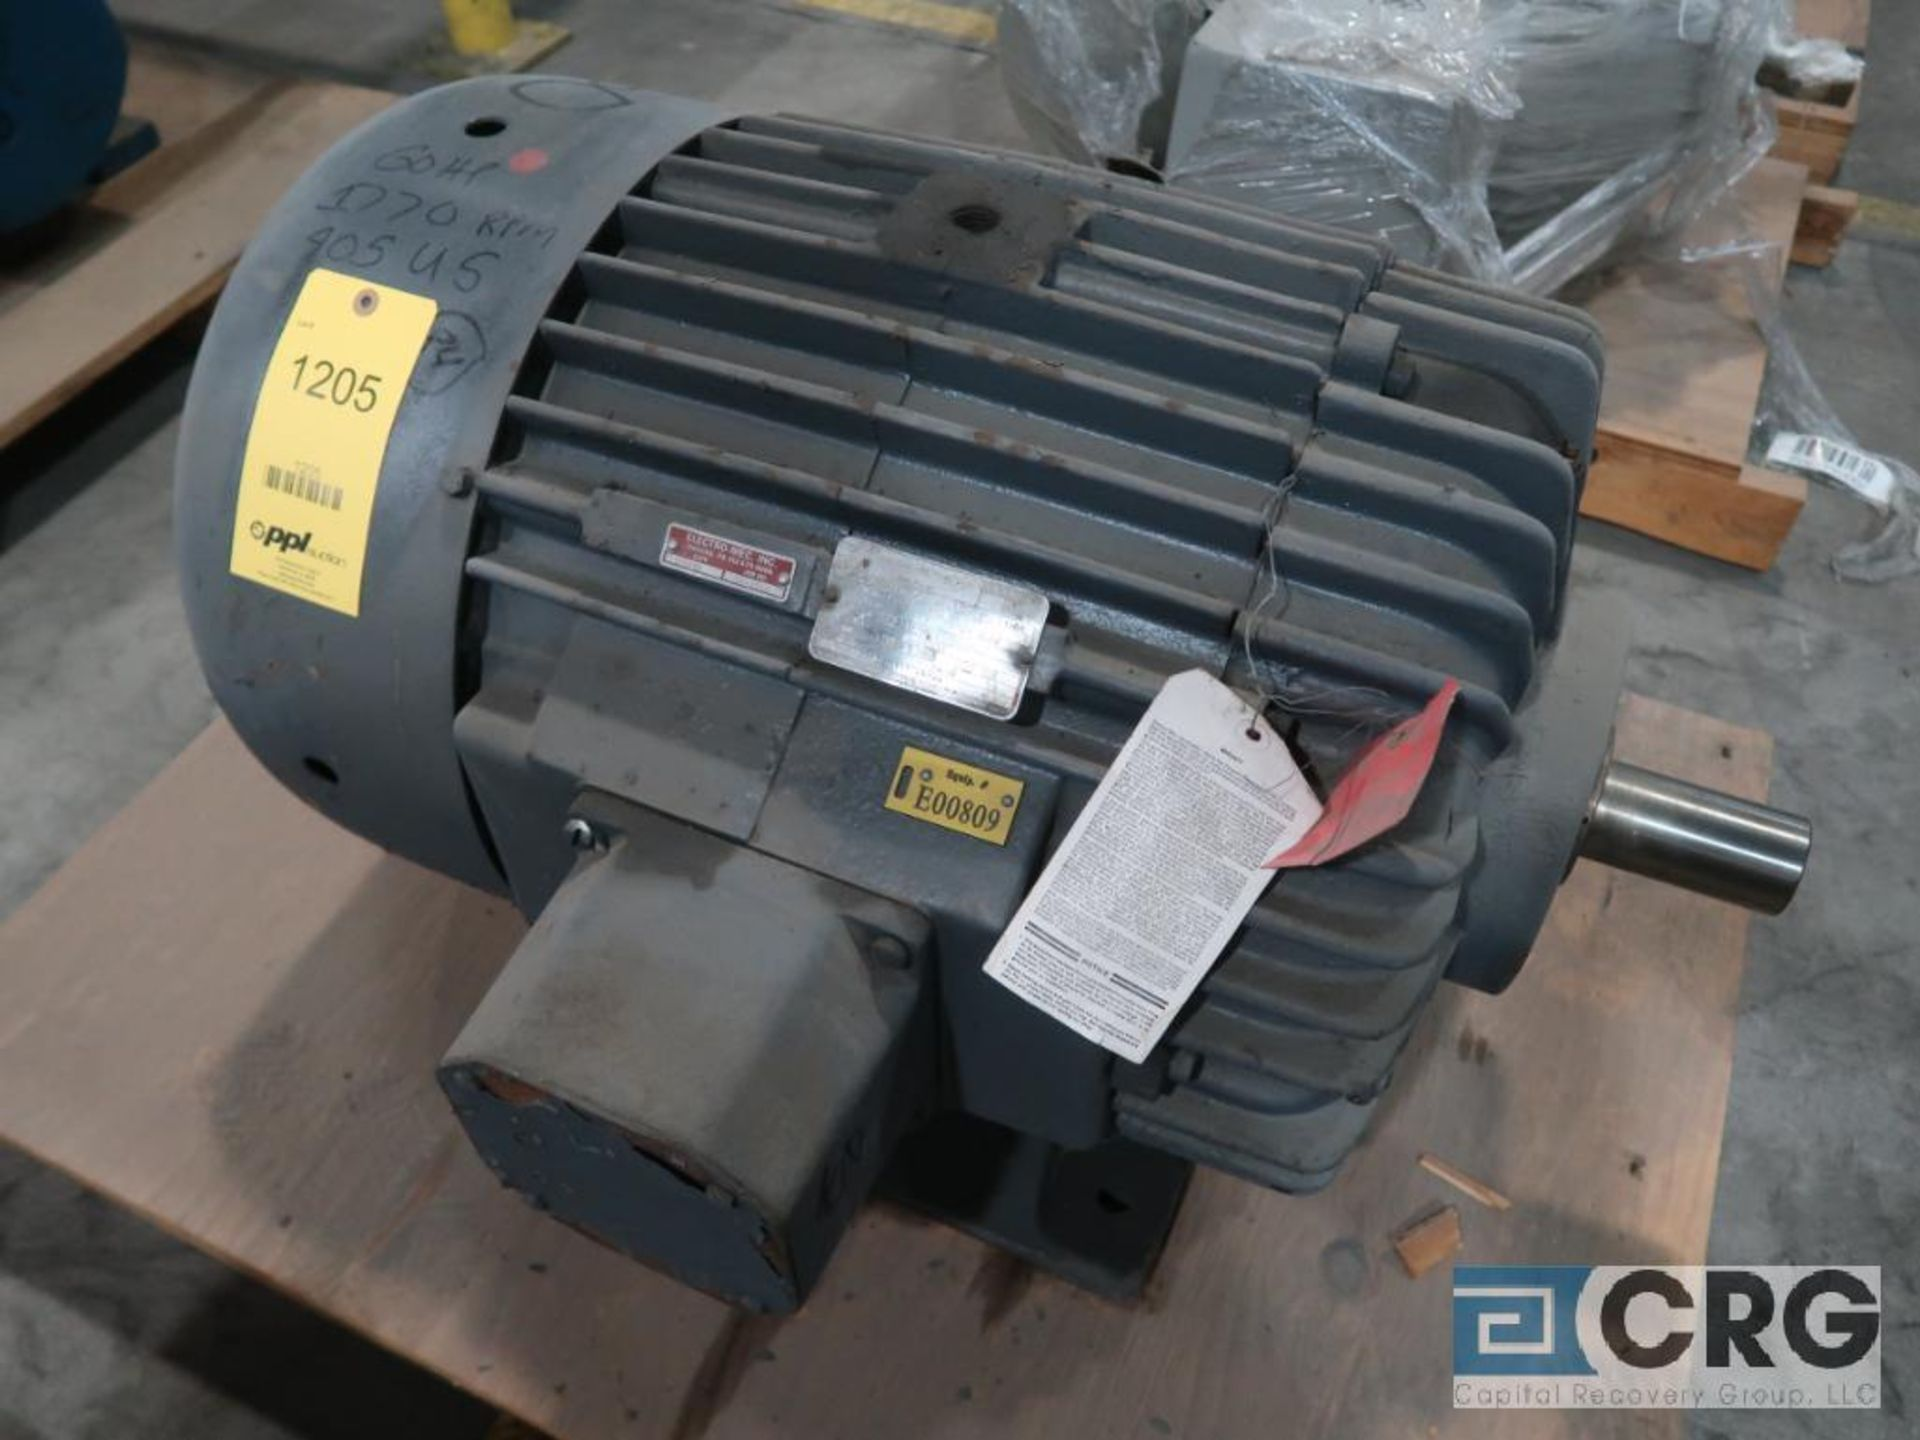 Delco AC motor, 60 HP, 1,765 RPMs, 460 volt, 3 ph., 405 US frame (Finish Building)